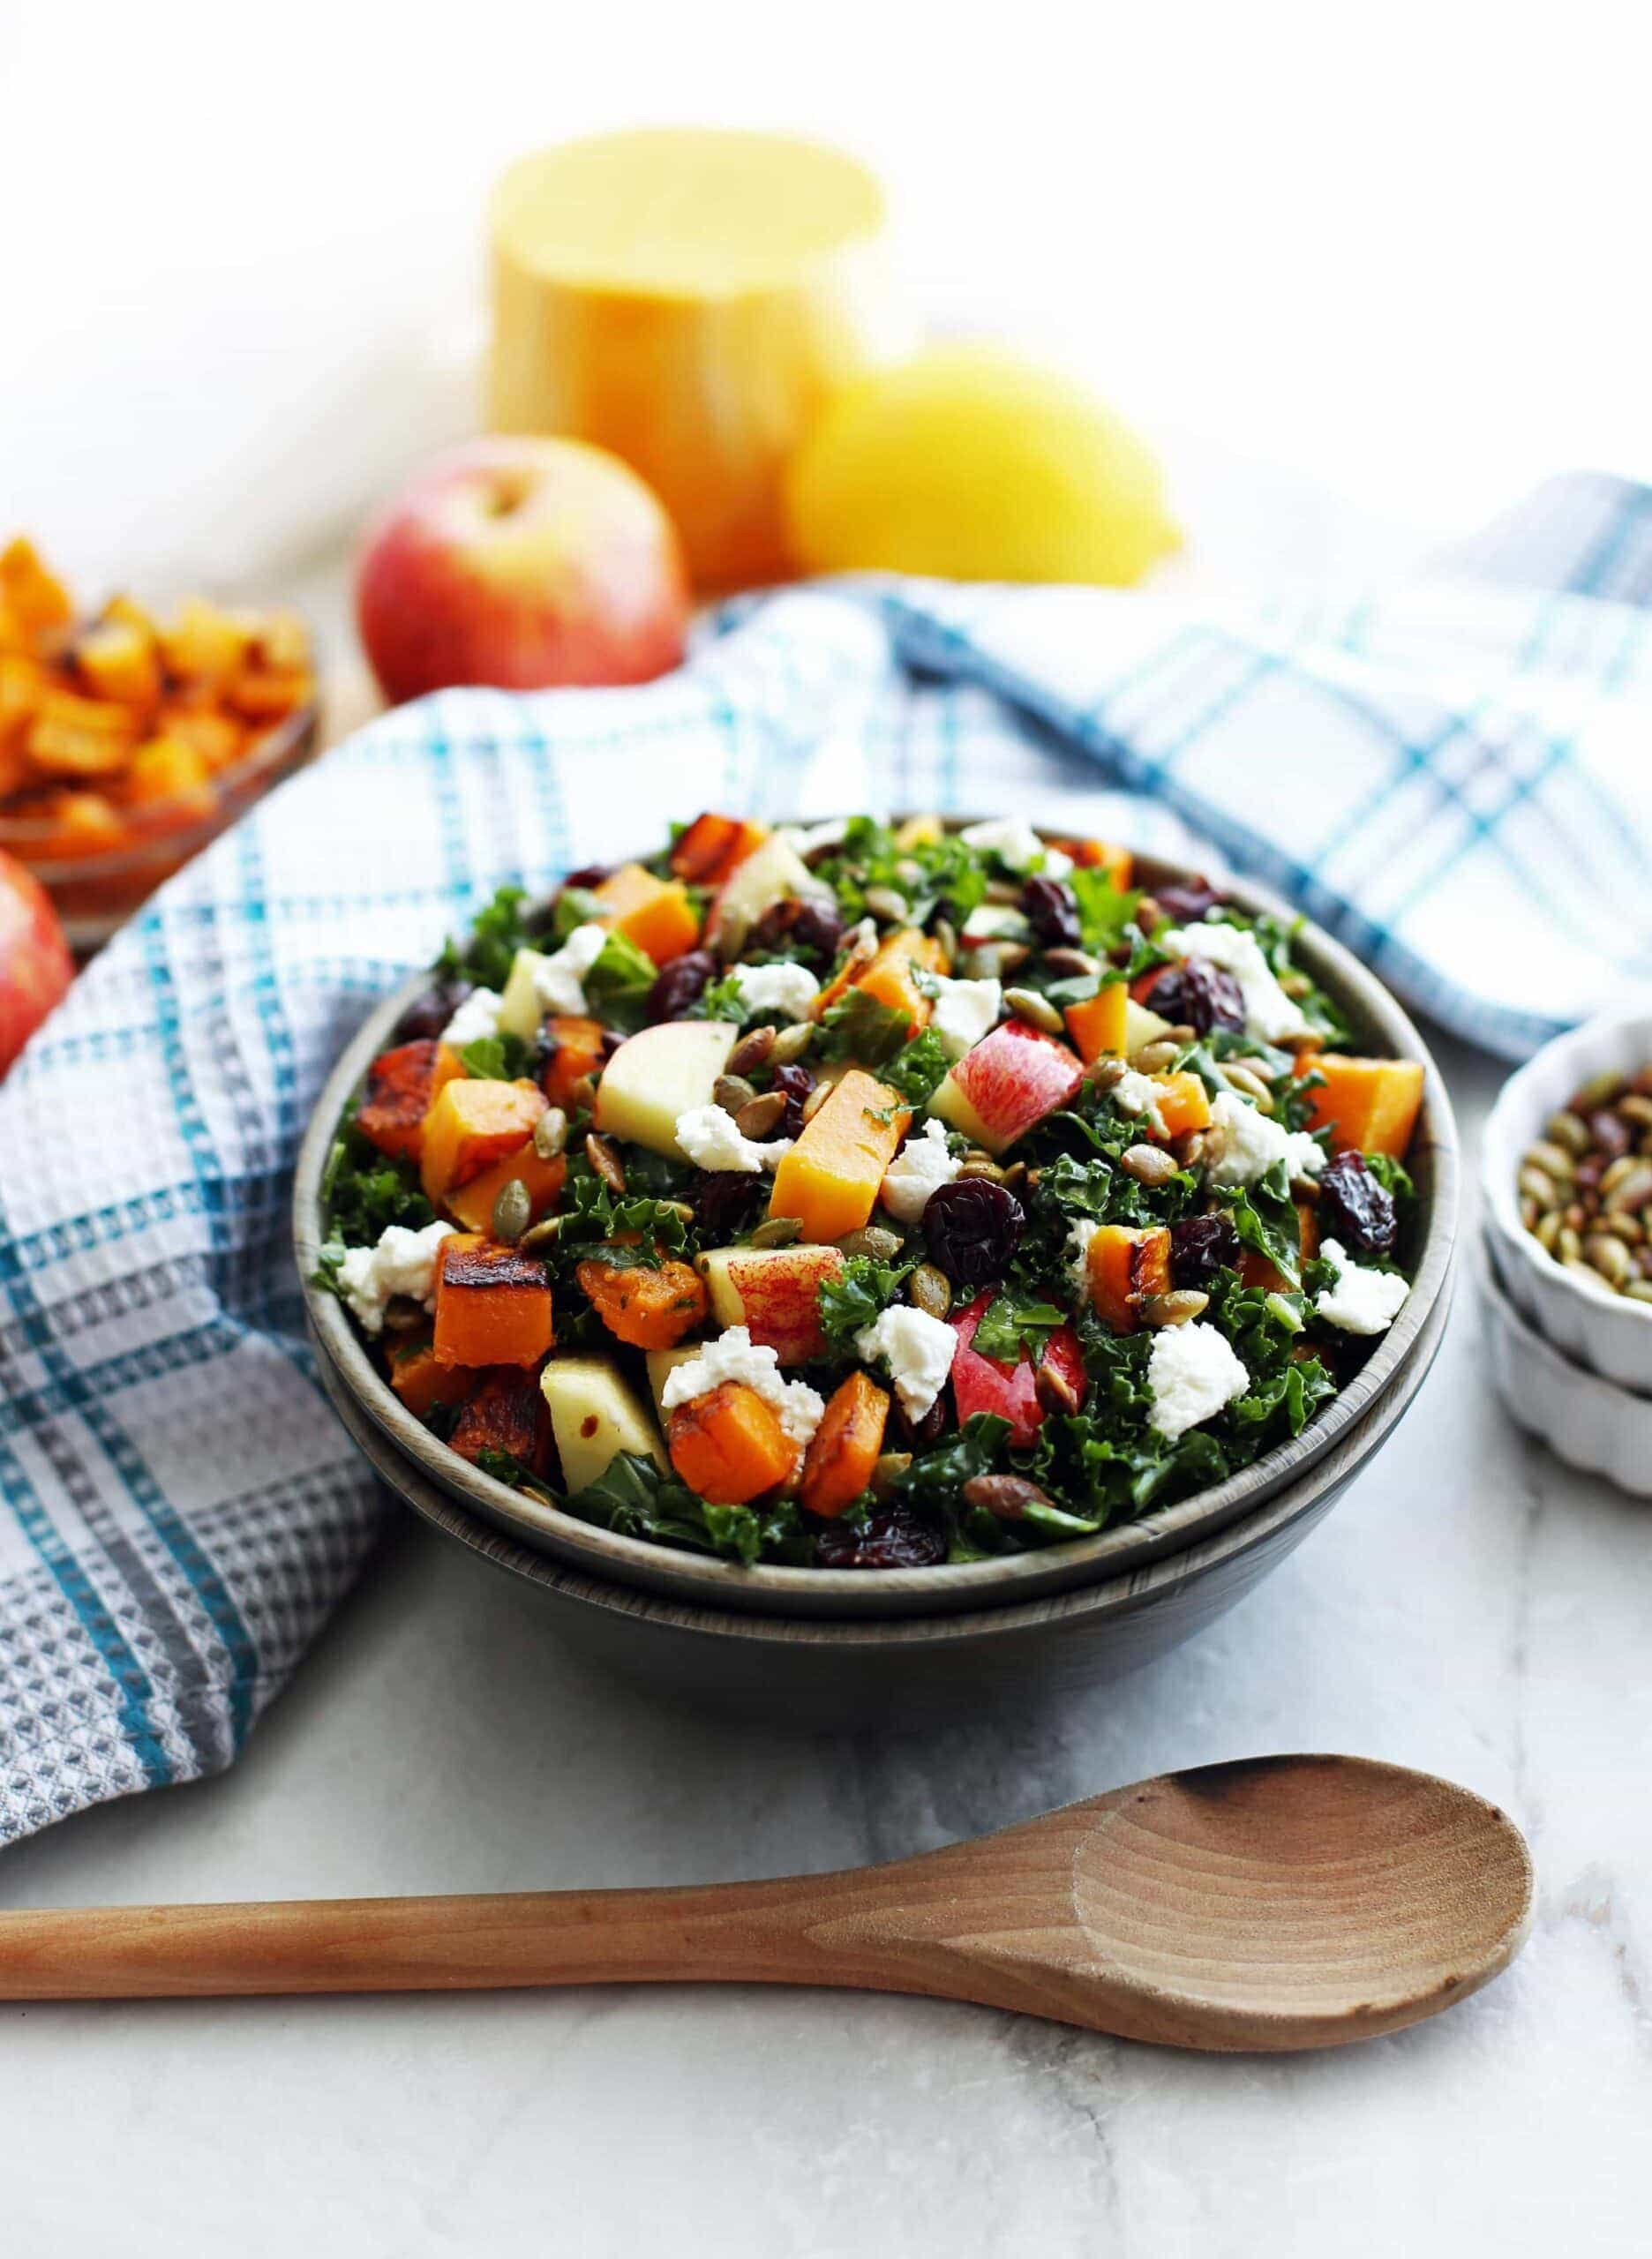 Roasted Butternut Squash and Apple Kale Salad with Lemon Vinaigrette